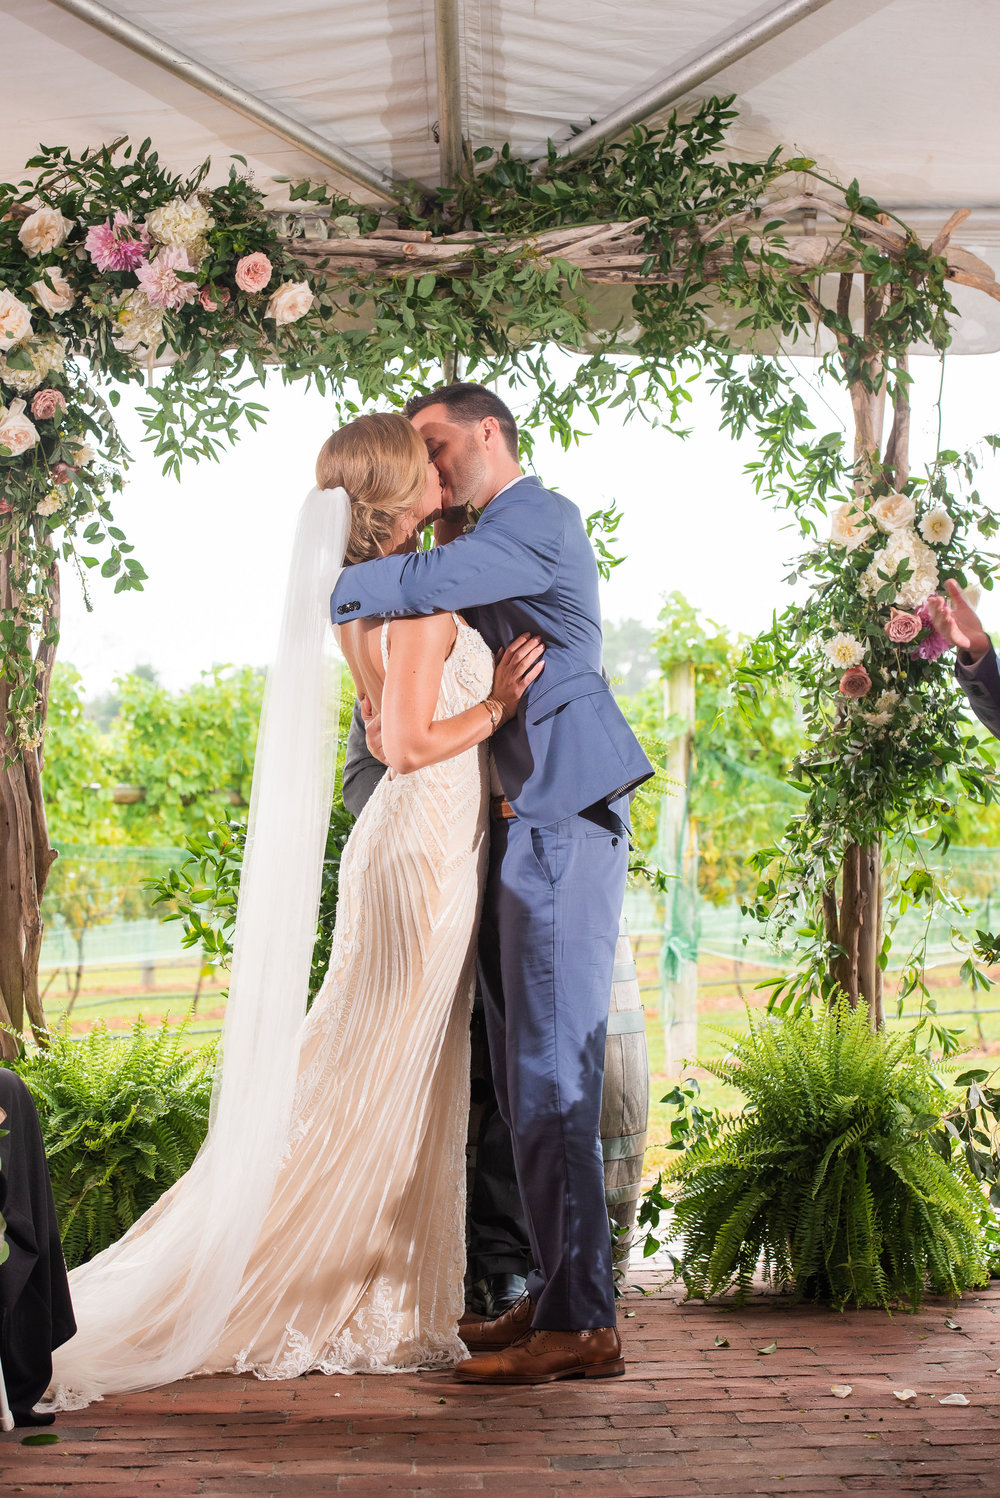 Cape May Wedding, Willow Creek Winery, Ceremony Arch, Aisle Decor, First Kiss, Blush and Green Flowers, Serena Star Photography